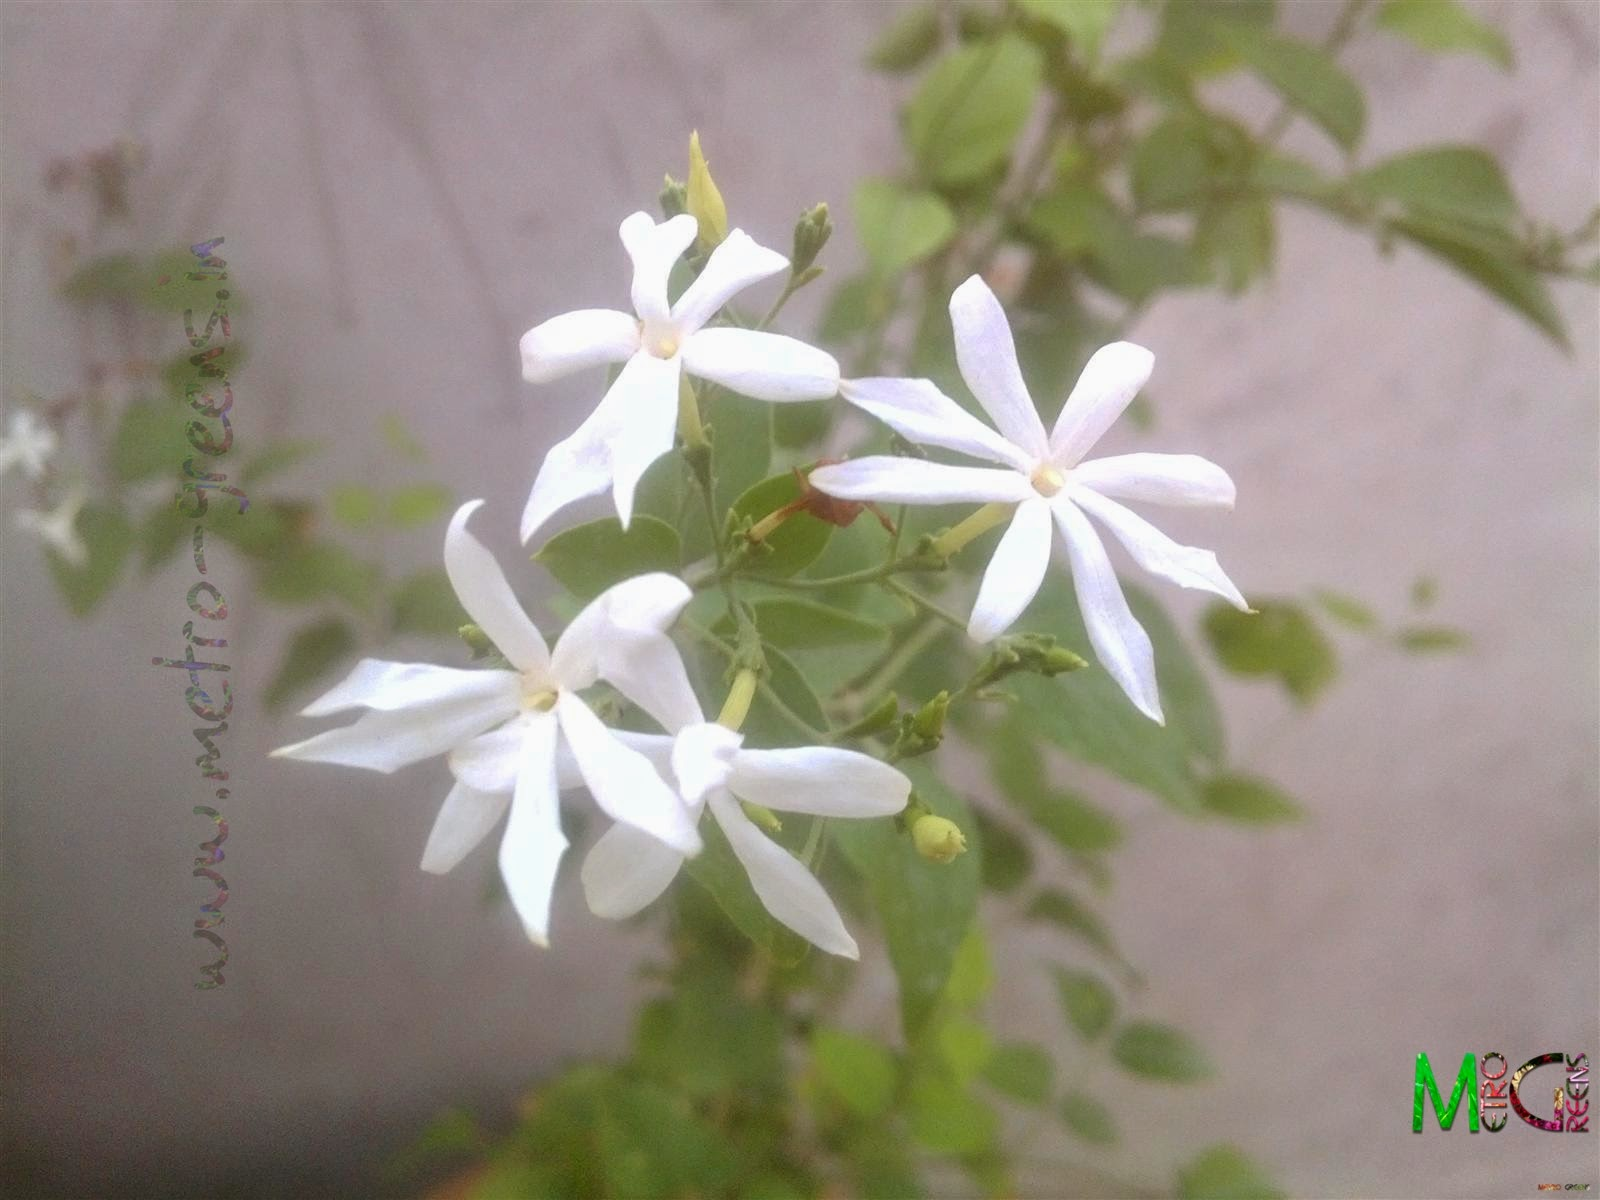 Metro Greens: Some heavily fragrant Juhi blooms